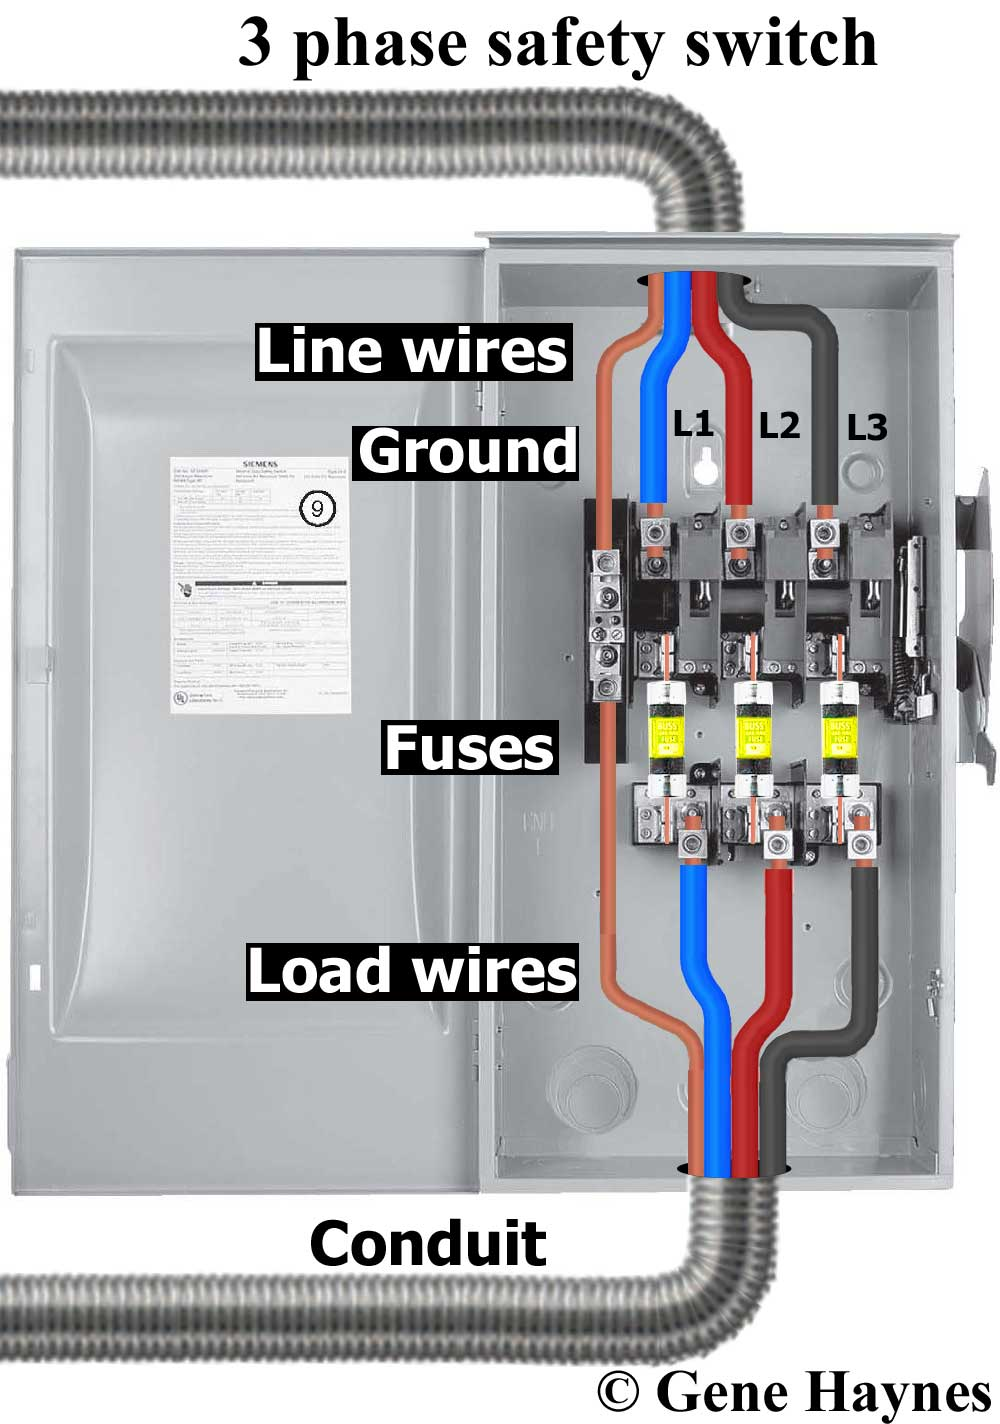 How To Wire Safety Switch 3 Phase Gfci Wiring Diagram Larger Image Pole Example Shows Fusable This Is Called A 4 But Only Wires Are Disconnected By